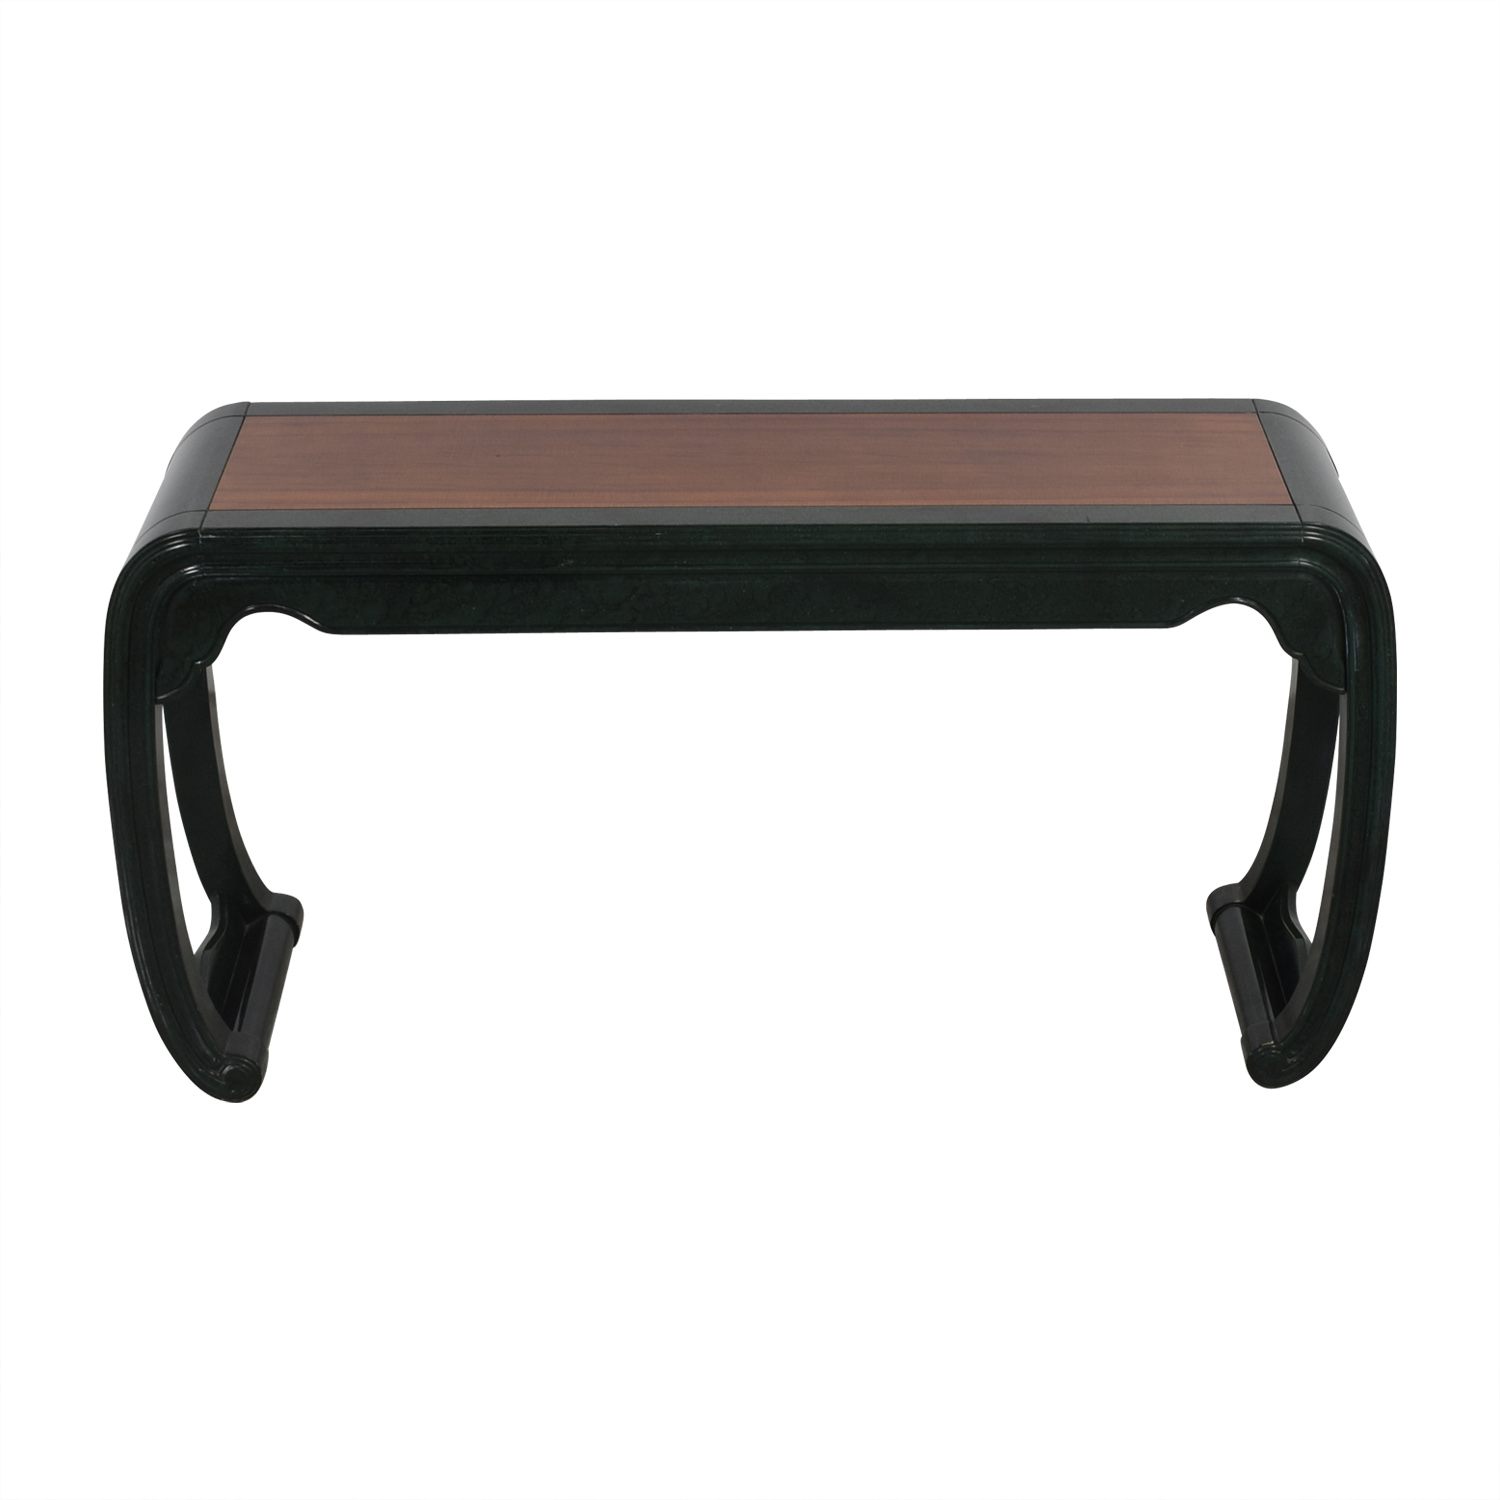 Henredon Henredon Green Sofa Table green/brown